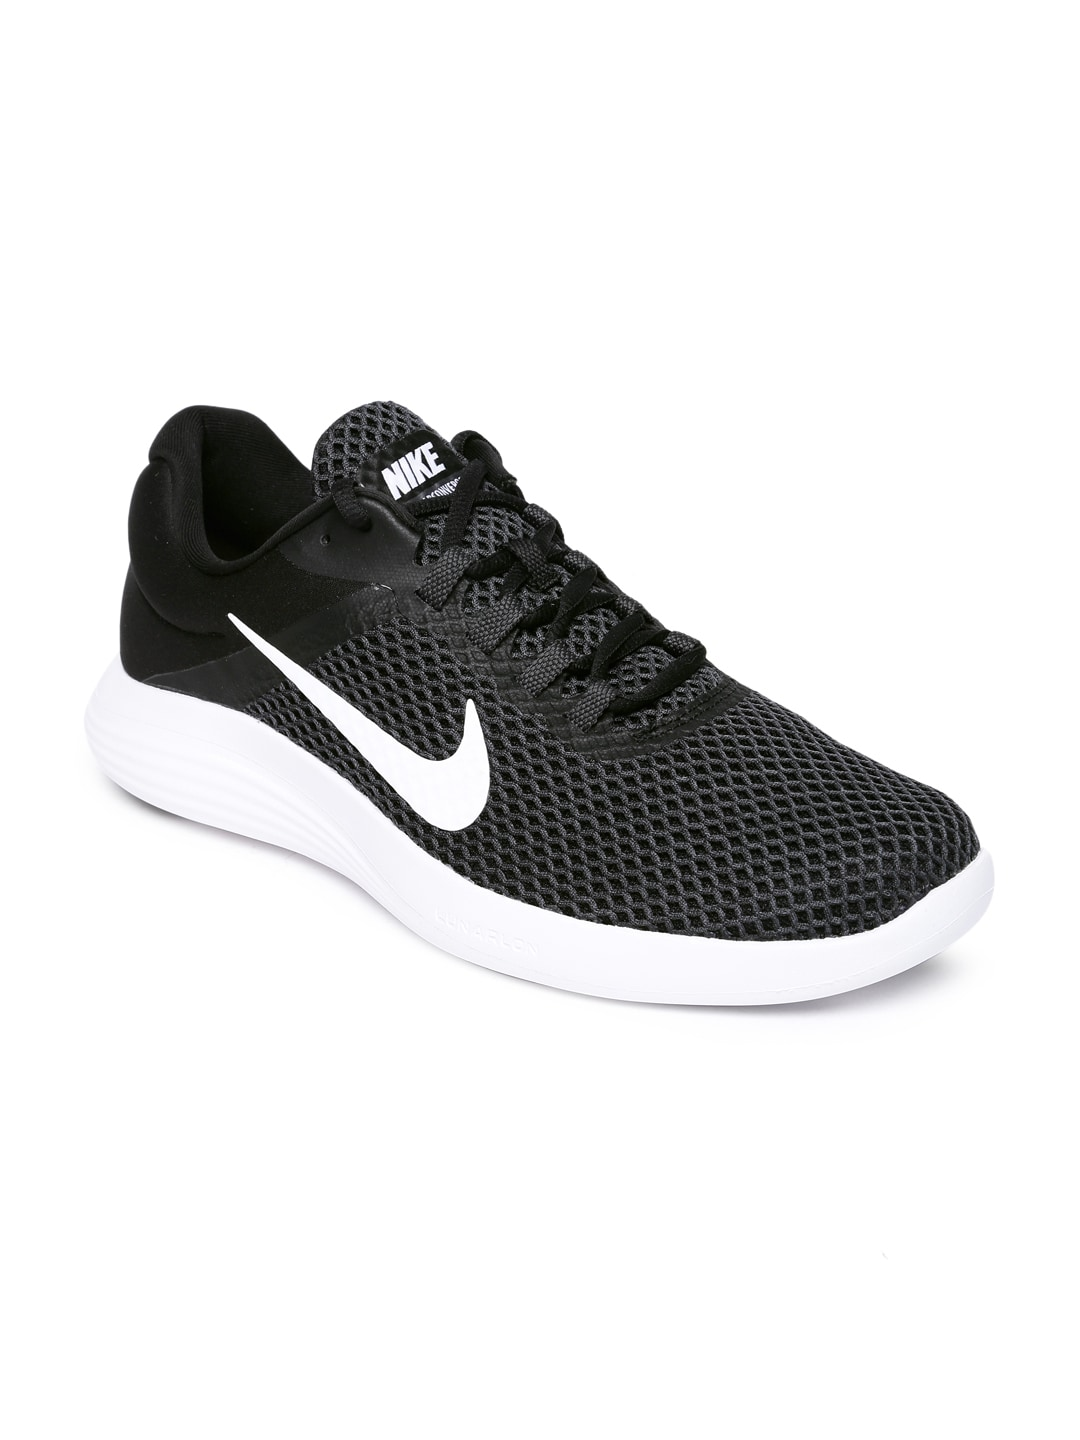 a4169470d0420 Nike Running Shoes - Buy Nike Running Shoes Online